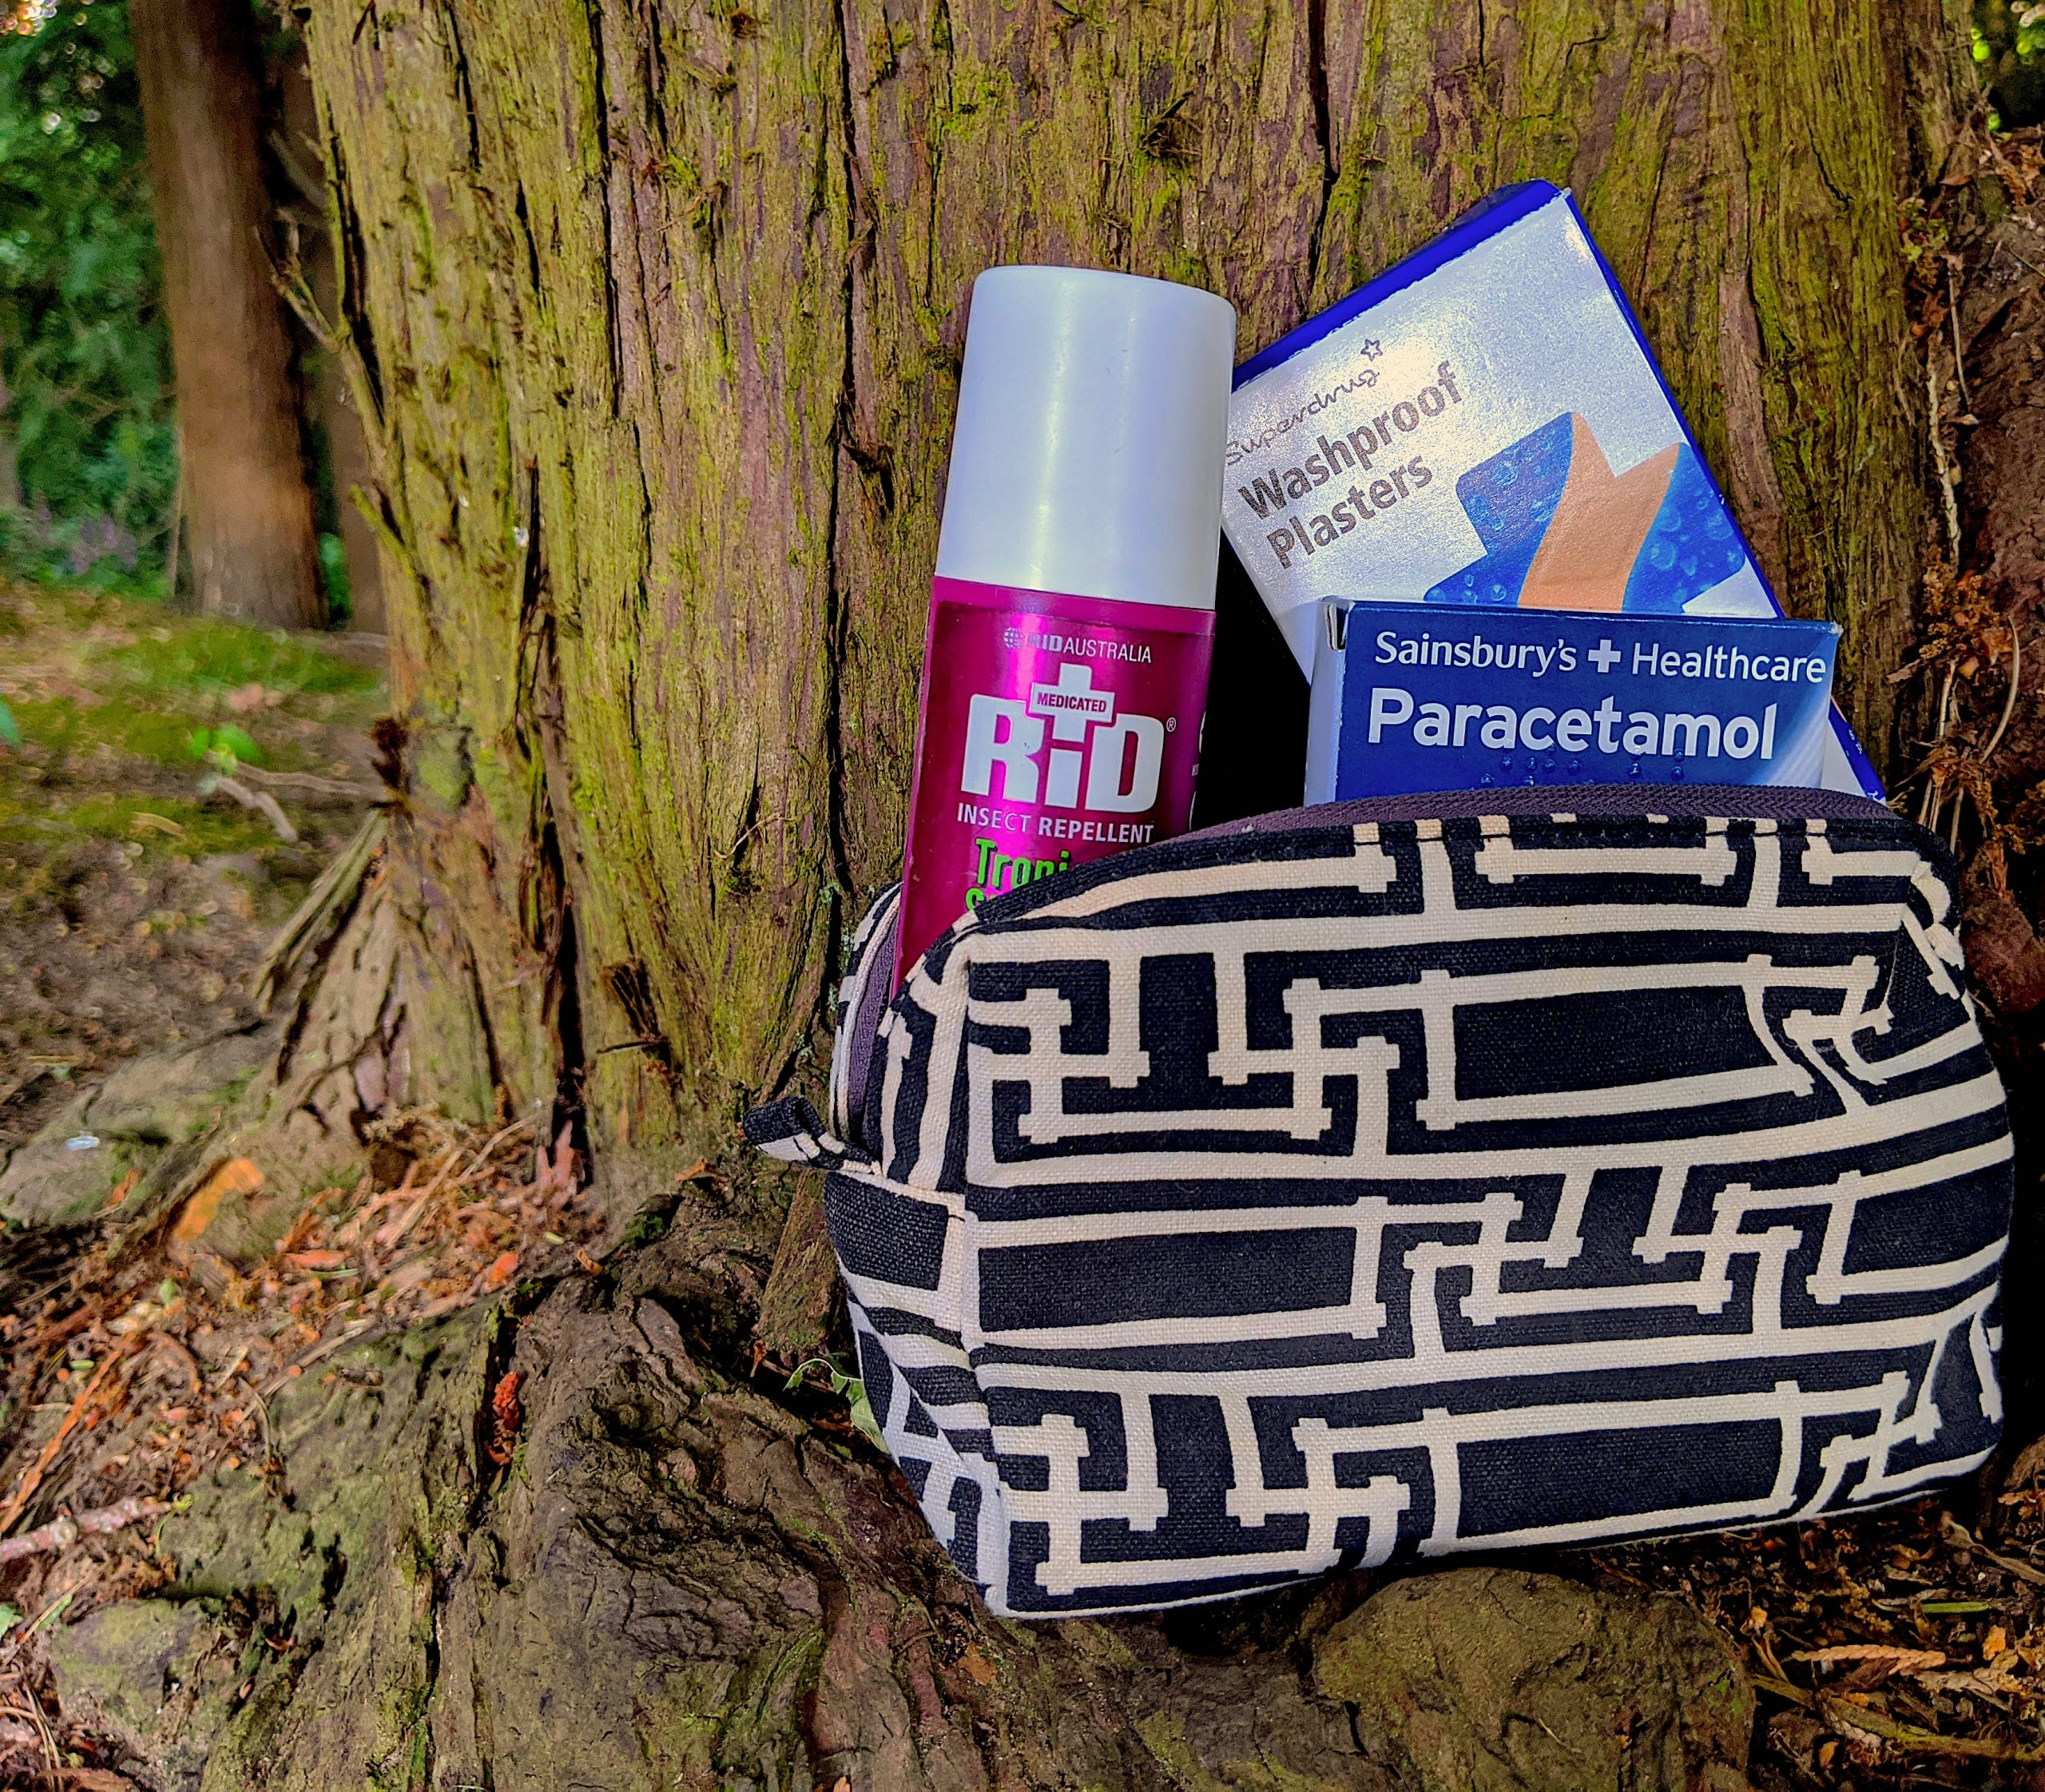 Paracetamol, insect repellent, and plasters poking out of a toiletries back in the woods